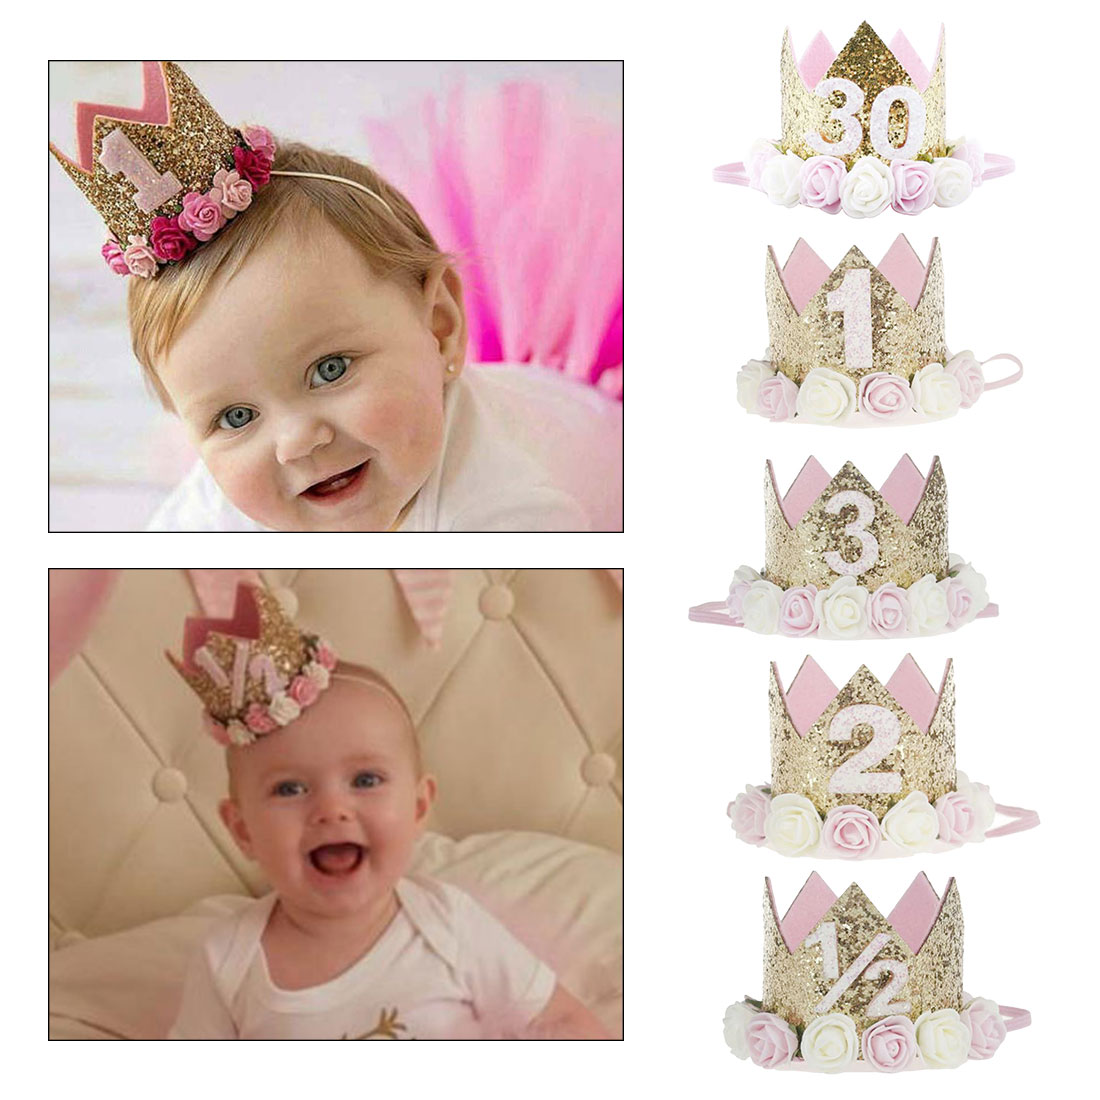 Party Cap Crown Headband 1 2 3 Year Number Priness Style Baby Girl First Birthday Decor Flower  Birthday Hat Baby Hair Accessory